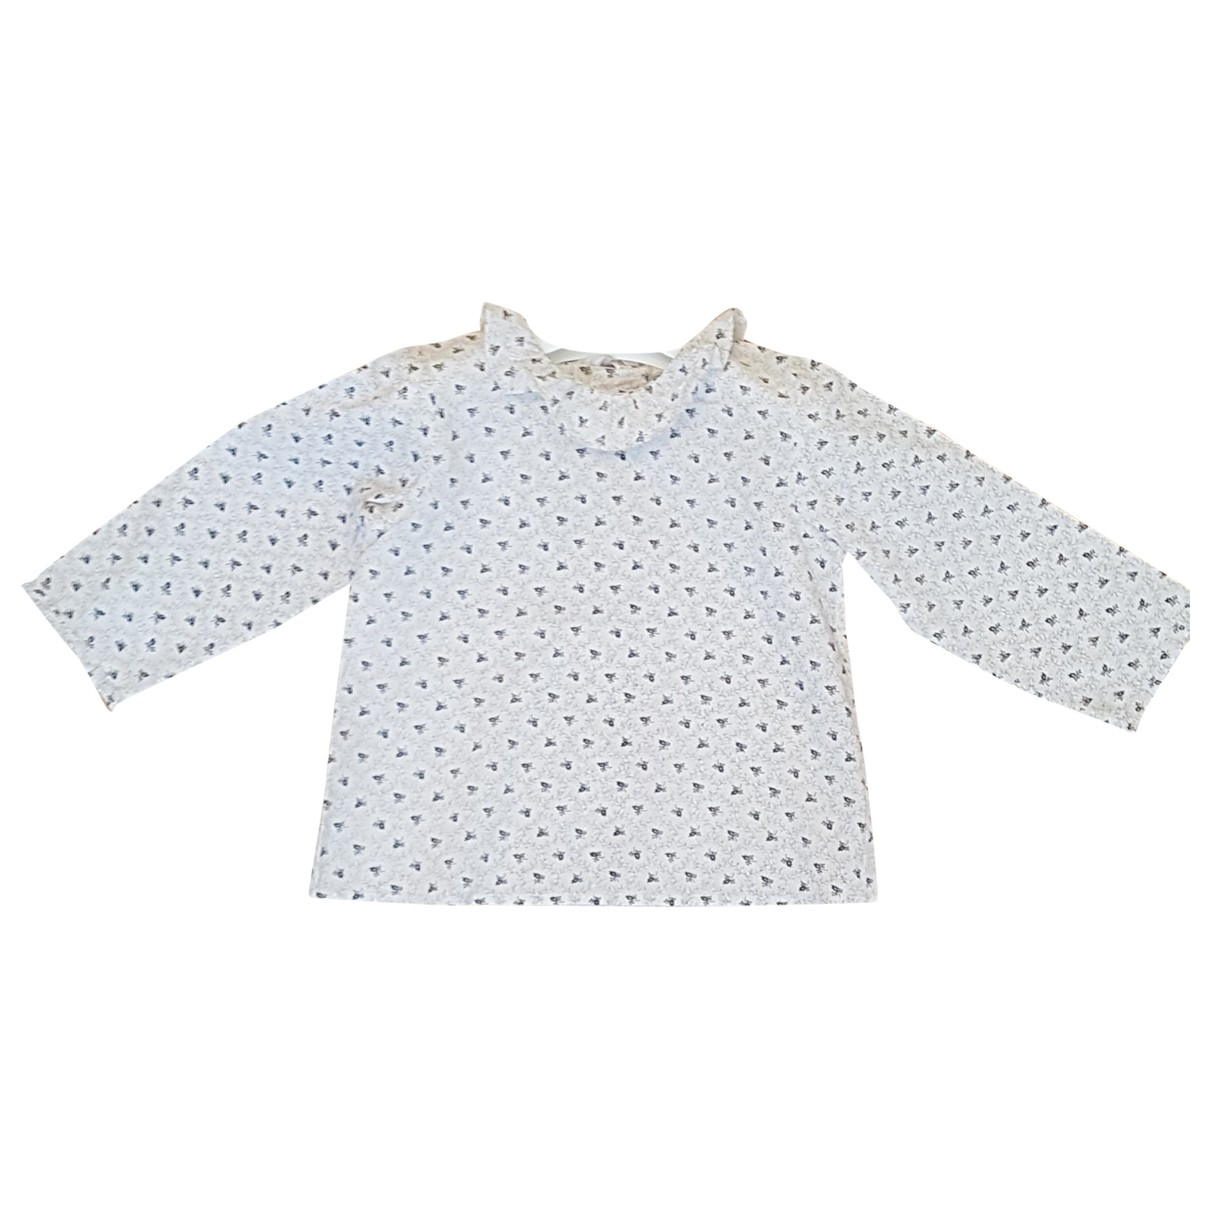 Bonpoint \N Beige Cotton  top for Kids 18 months - up to 81cm FR